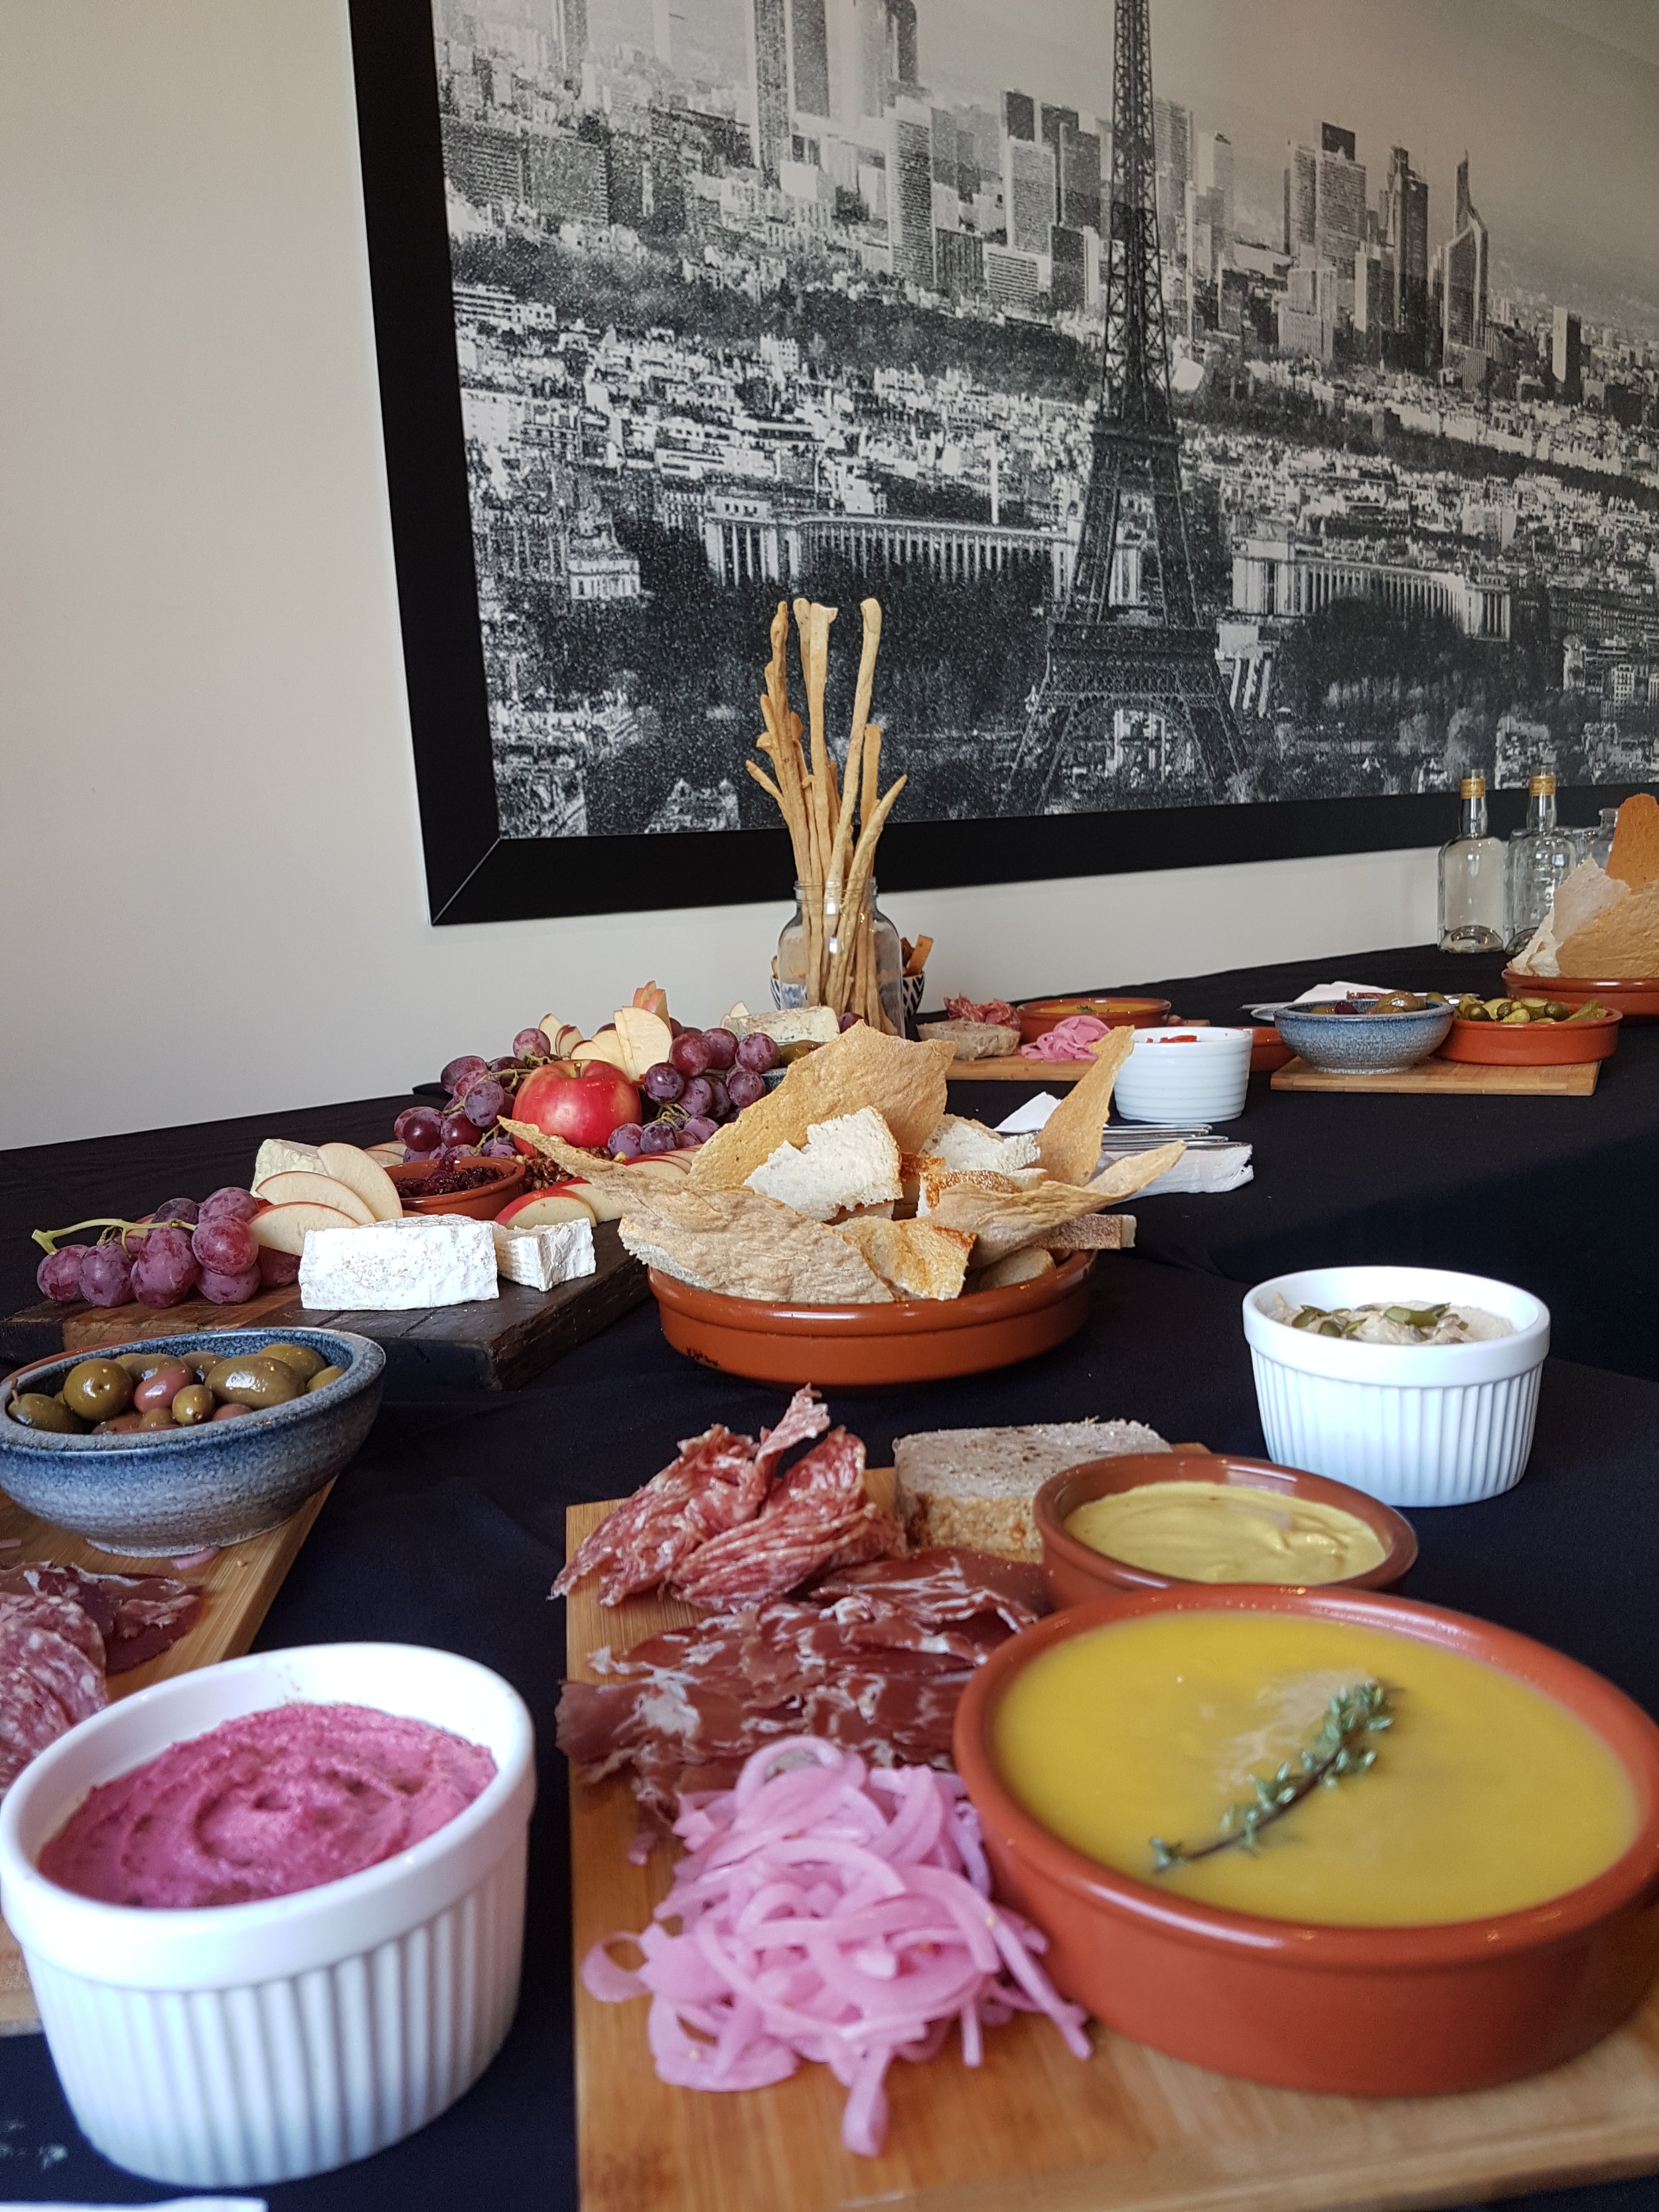 Charcuterie And Cheese - For 1 or for 50…